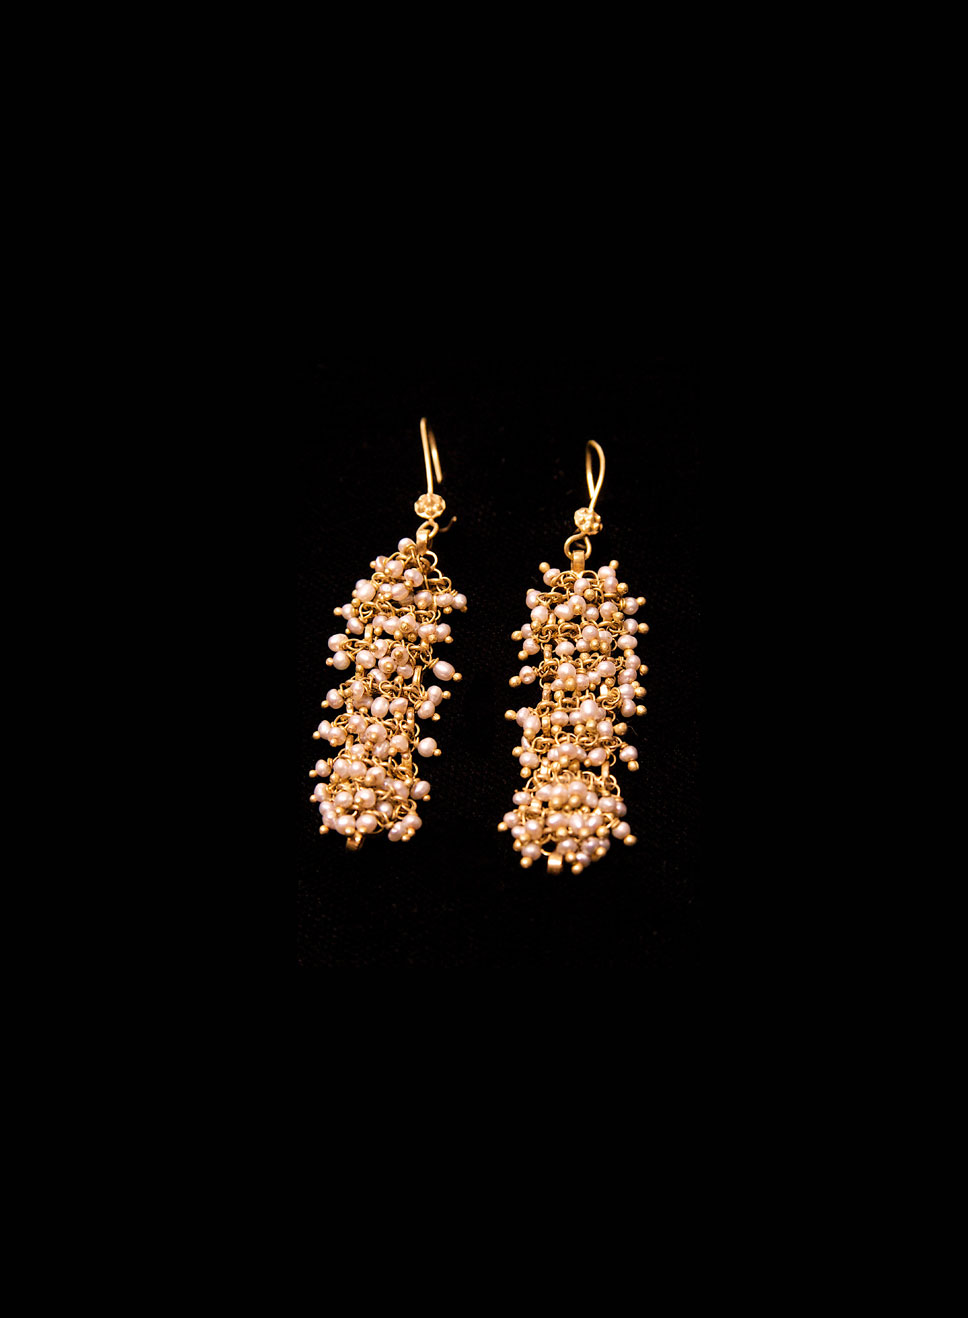 Sea pearls  earrings. 22ct gold. Earring length- 6cm.